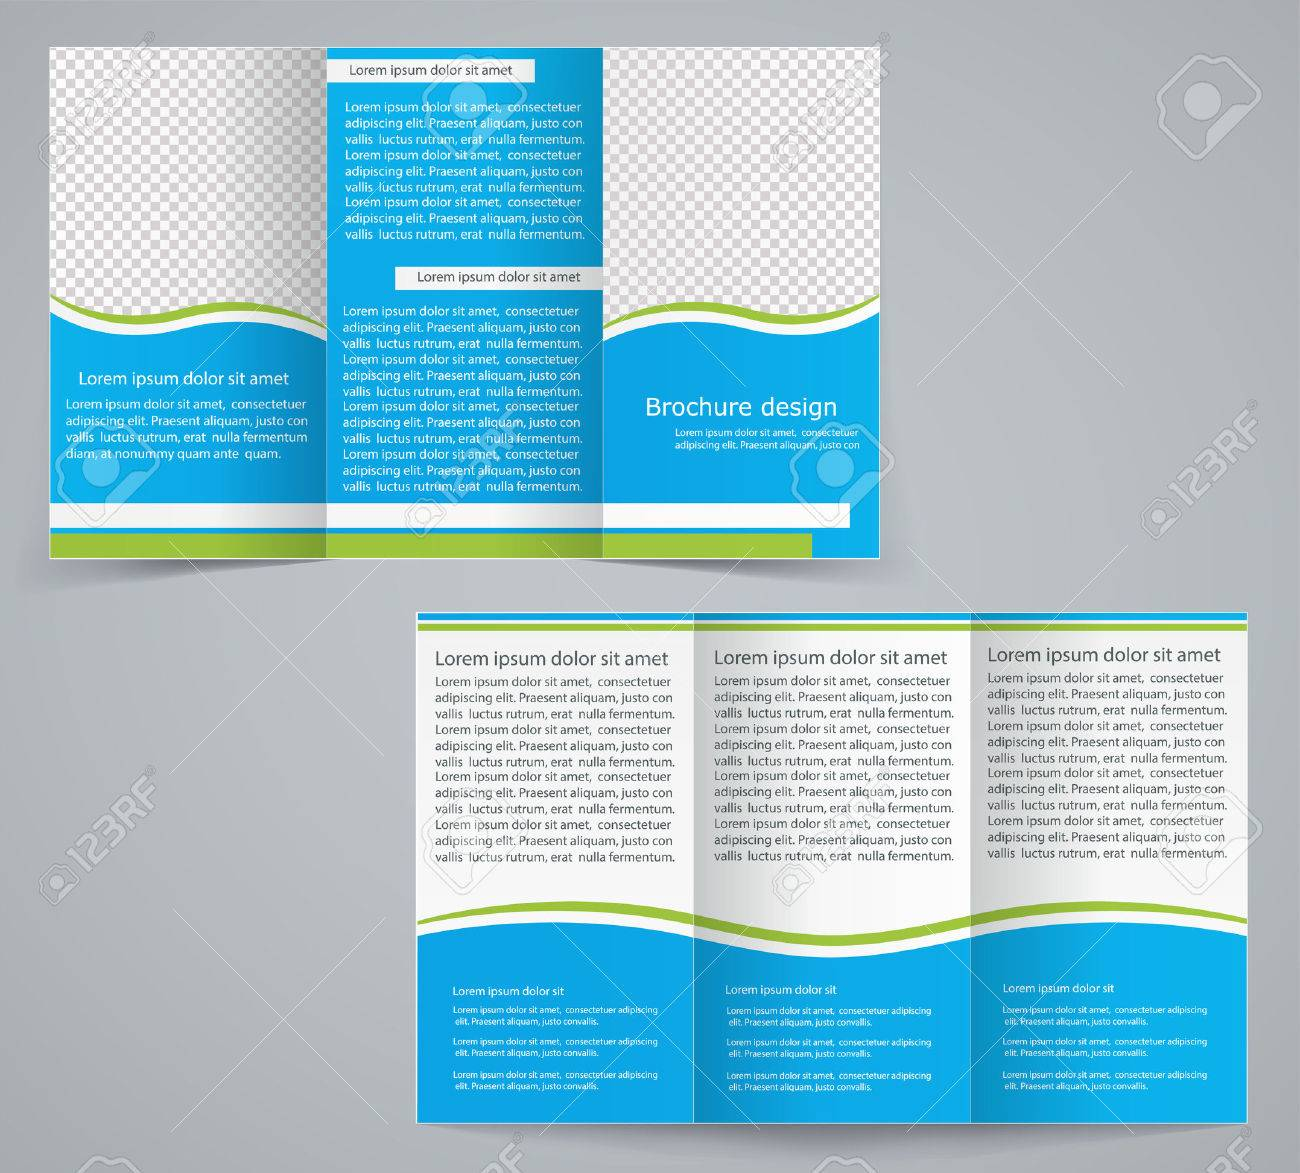 Cute 1 Page Resume Format Free Download Thick 100 Free Resume Builder And Download Round 100 Free Resume Builder Online 1099 Contract Template Youthful 15 Year Old Resume Orange2 Circle Template Tri Fold Business Brochure Template, Vector Blue Design Flyer ..